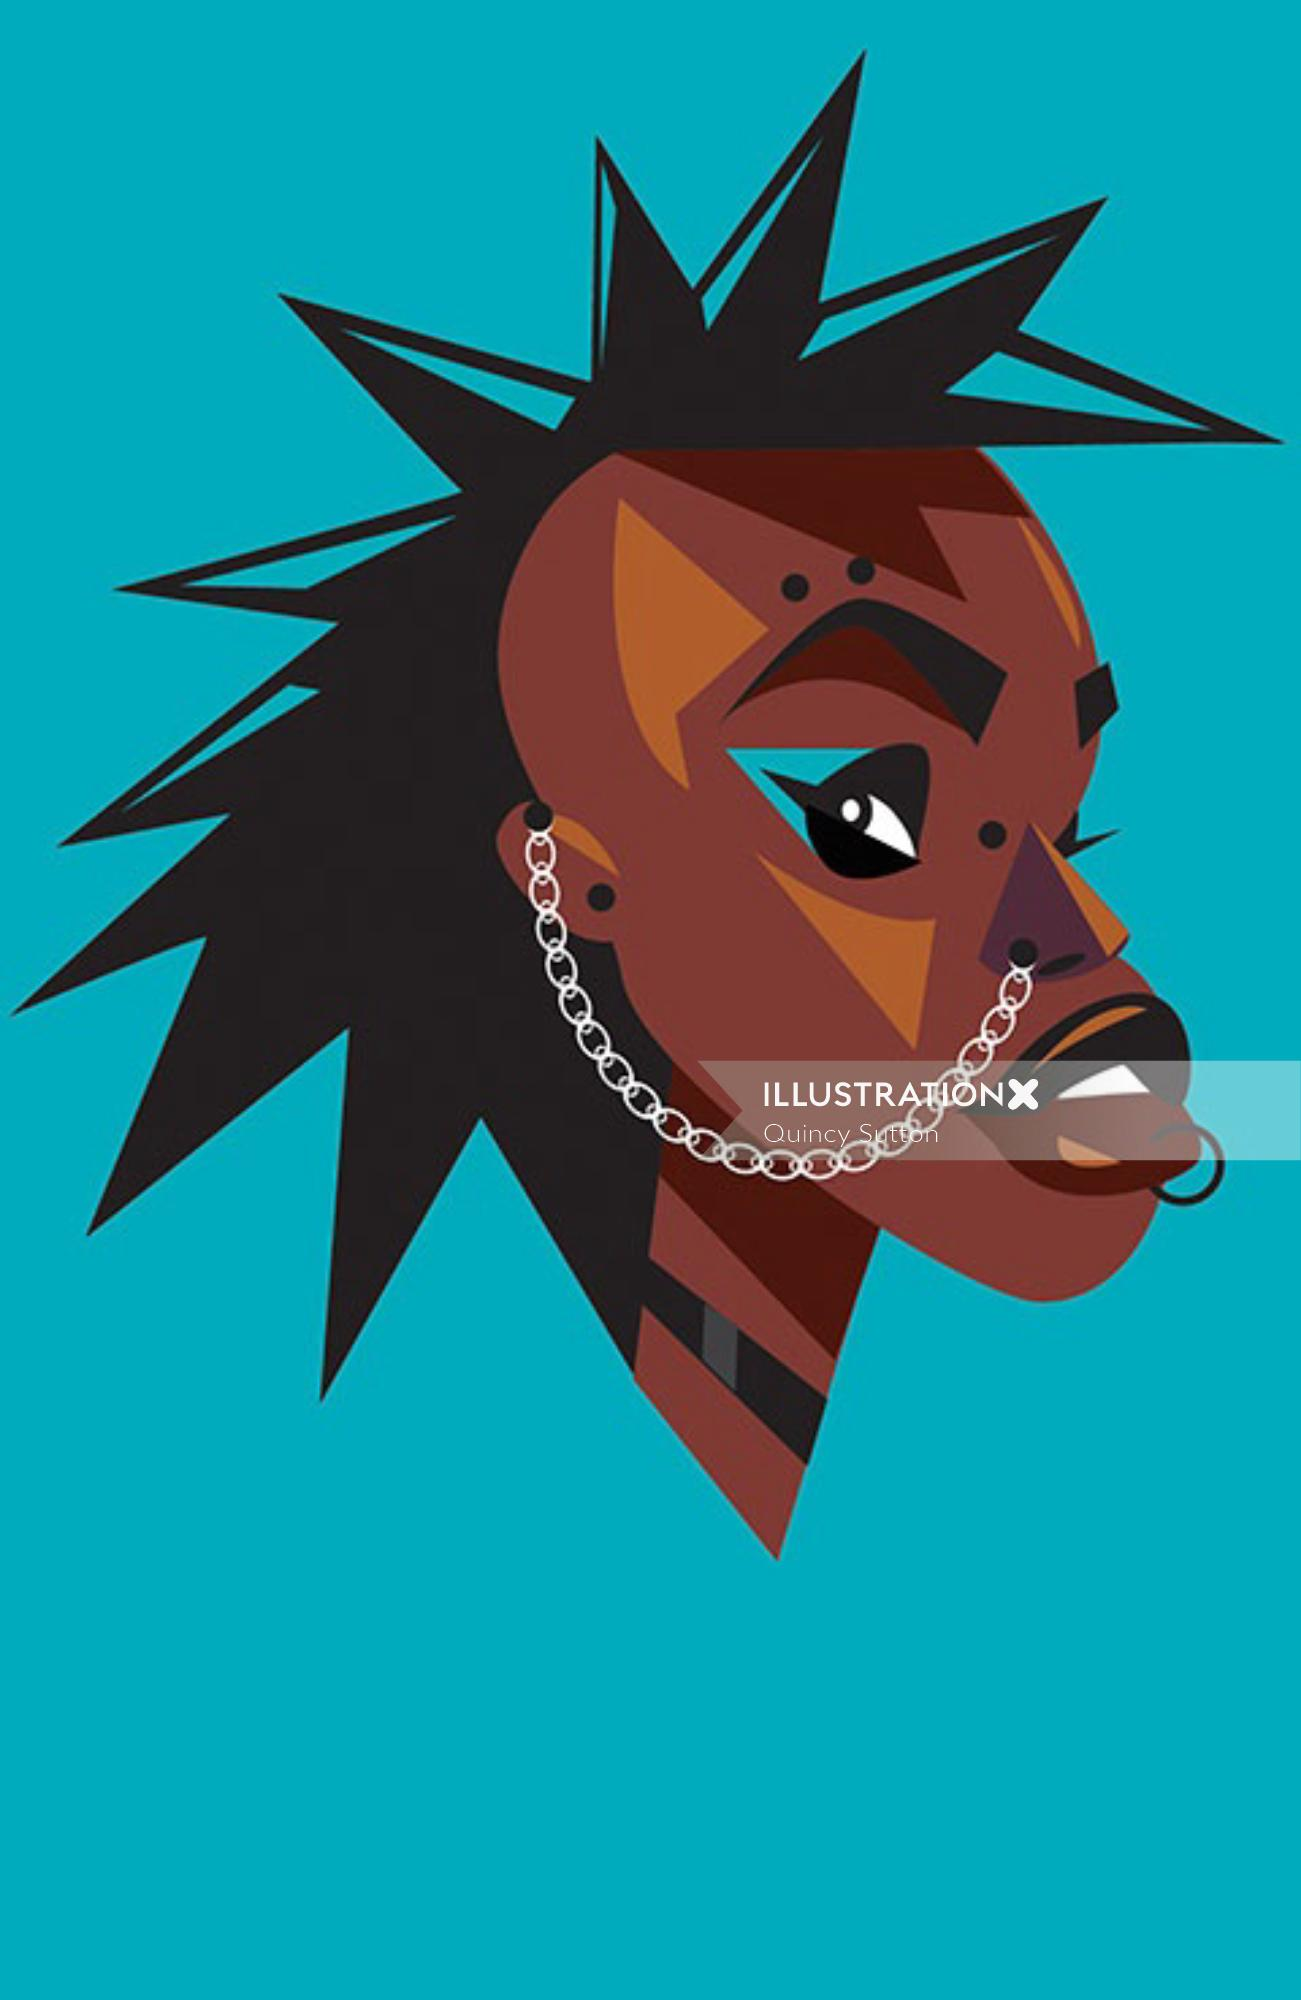 Afro Punk comic illustration by Quincy Sutton